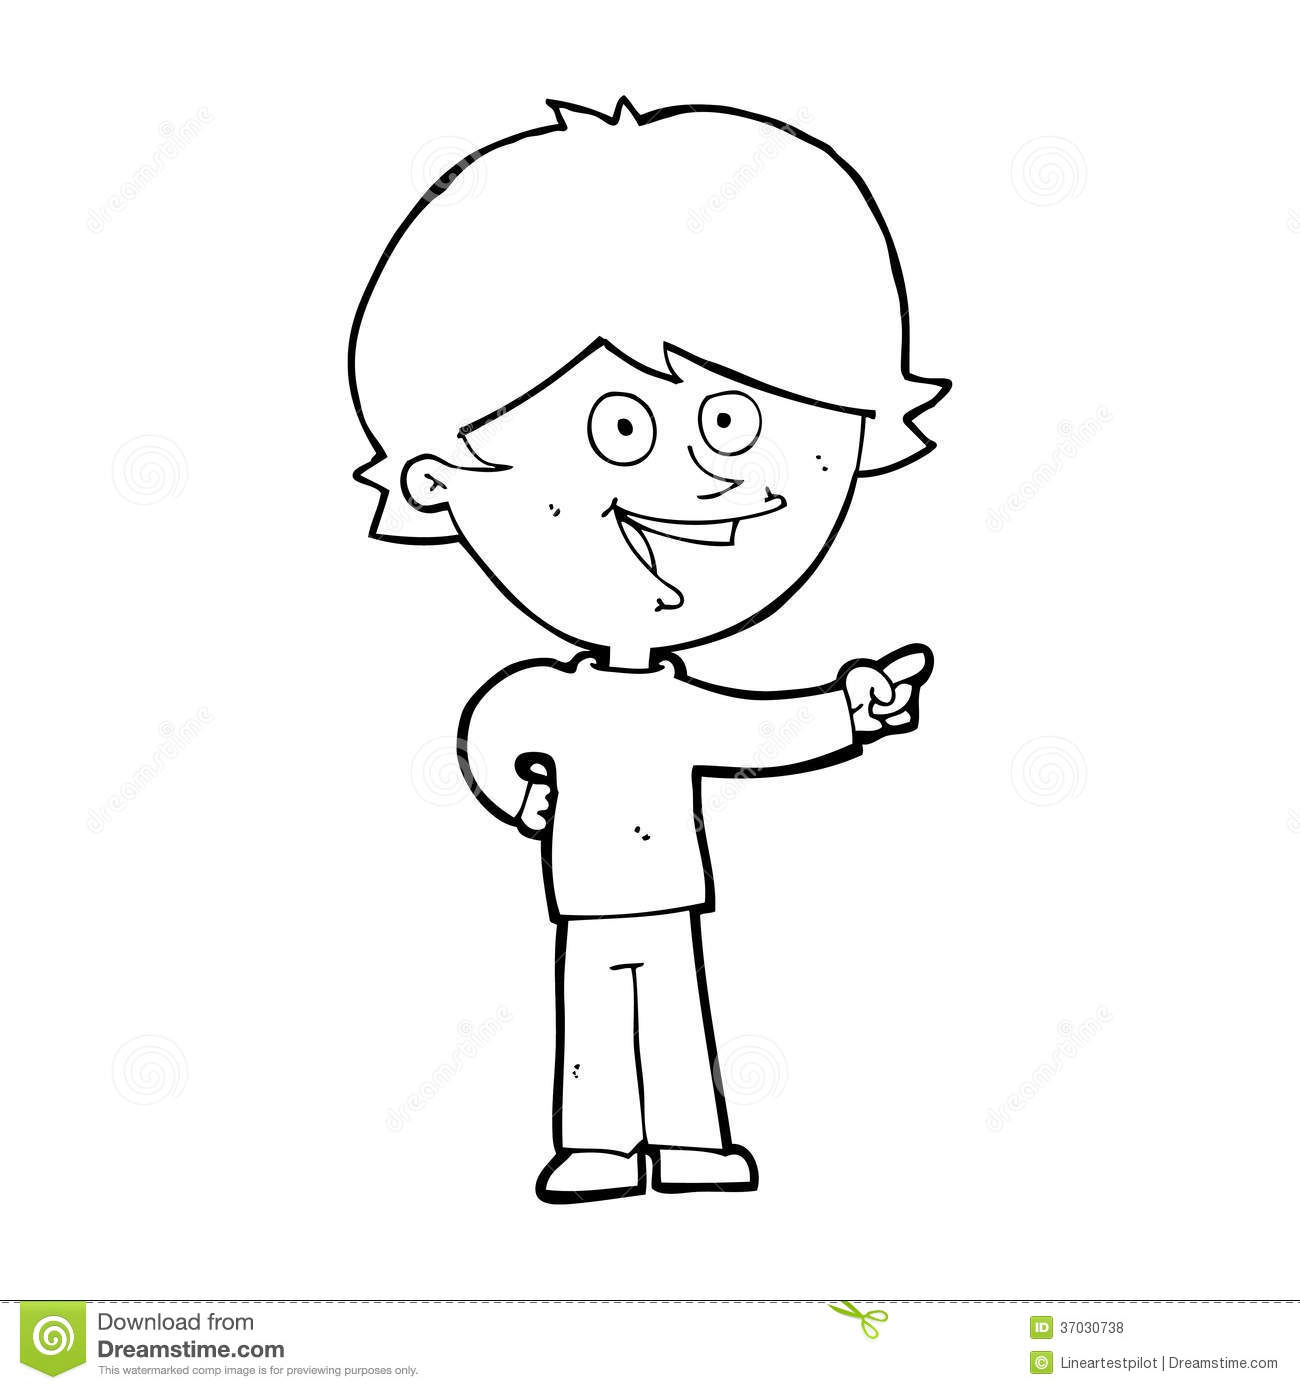 Cartoon Boy Laughing And Pointing Royalty Free Stock